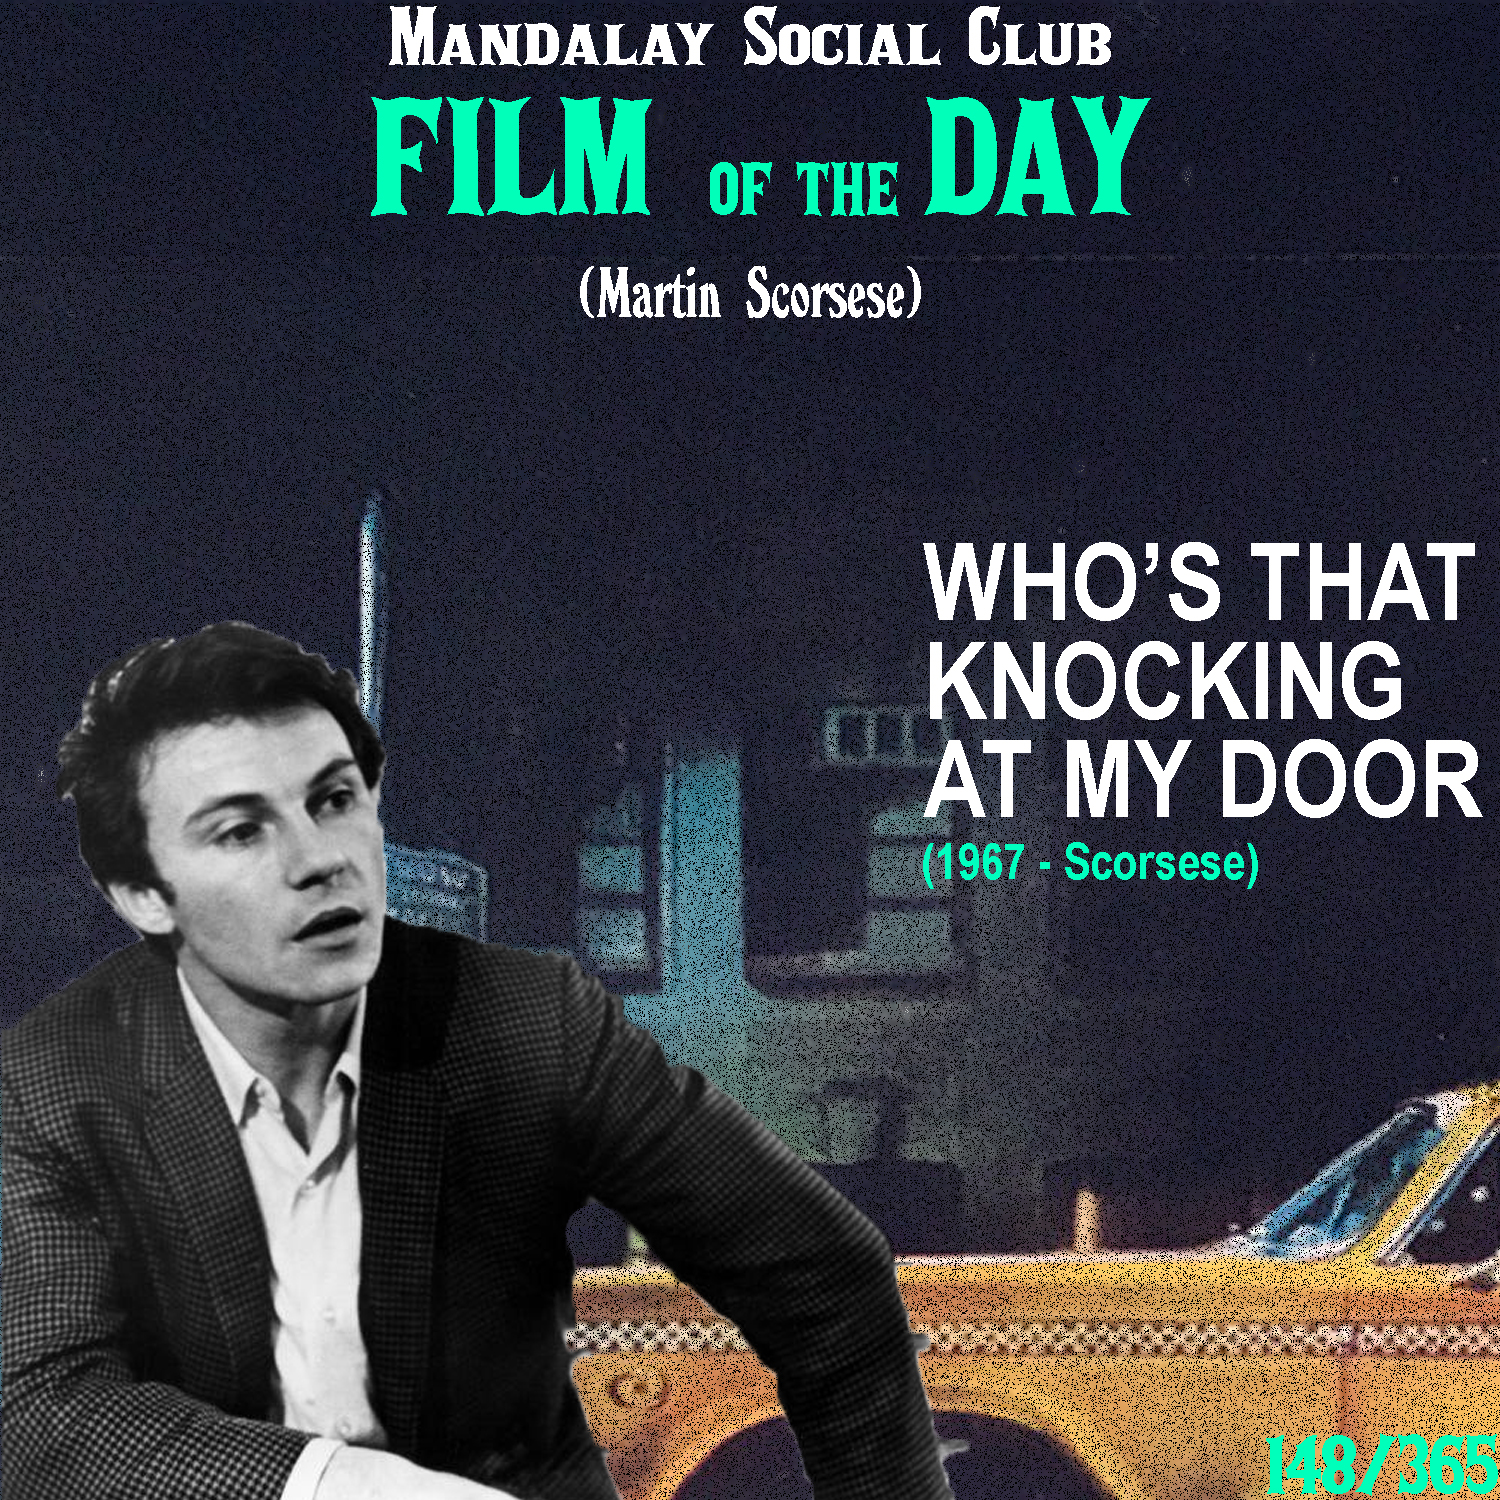 WHO'S THAT KNOCKING AT MY DOOR?     (dir. Martin Scorsese)   Marty Scorsese's debut came at a time when cinema was changing and it brought some attention to this promising young director who would later go on to have one of the most exciting and prolific careers in filmmaking.  Harvey Keitel stars as JR, a young New York kid who spends his days mainly getting drunk with his friends, however we see that most of the time, his days are consumed with thoughts about an intriguing young girl he began seeing. What the film lacks in plot, it makes up for in style. Who's That Knocking is easily one of the most stylistic films in Scorsese's filmography and he approached it a lot like Arthur Penn approached his debut, Mickey One, where they indulged themselves in the cinematic possibilities introduced to them via the French New Wave.  This film is among the more underrated films in Scorsese's career and it's understandable to a degree why that is. For one, this film isn't particularly accessible and it's lack of a sturdy plot gives way for a lot of boredom if you're not a cinephile, intrigued by the literacy and technicalities of filmmaking. Scorsese's debut made it very well known that Scorsese is a movie brat and this quality is what I believe has kept him so relevant for so long. It's also why Tarantino is so unbelievably popular. There's a love, admiration, and respect for the cinematic art form that translates to the screen and gives viewers the feeling that thes was made by someone who truly cares.  4.5/5  WATCH: Putlocker (FREE), YouTube (RENT)